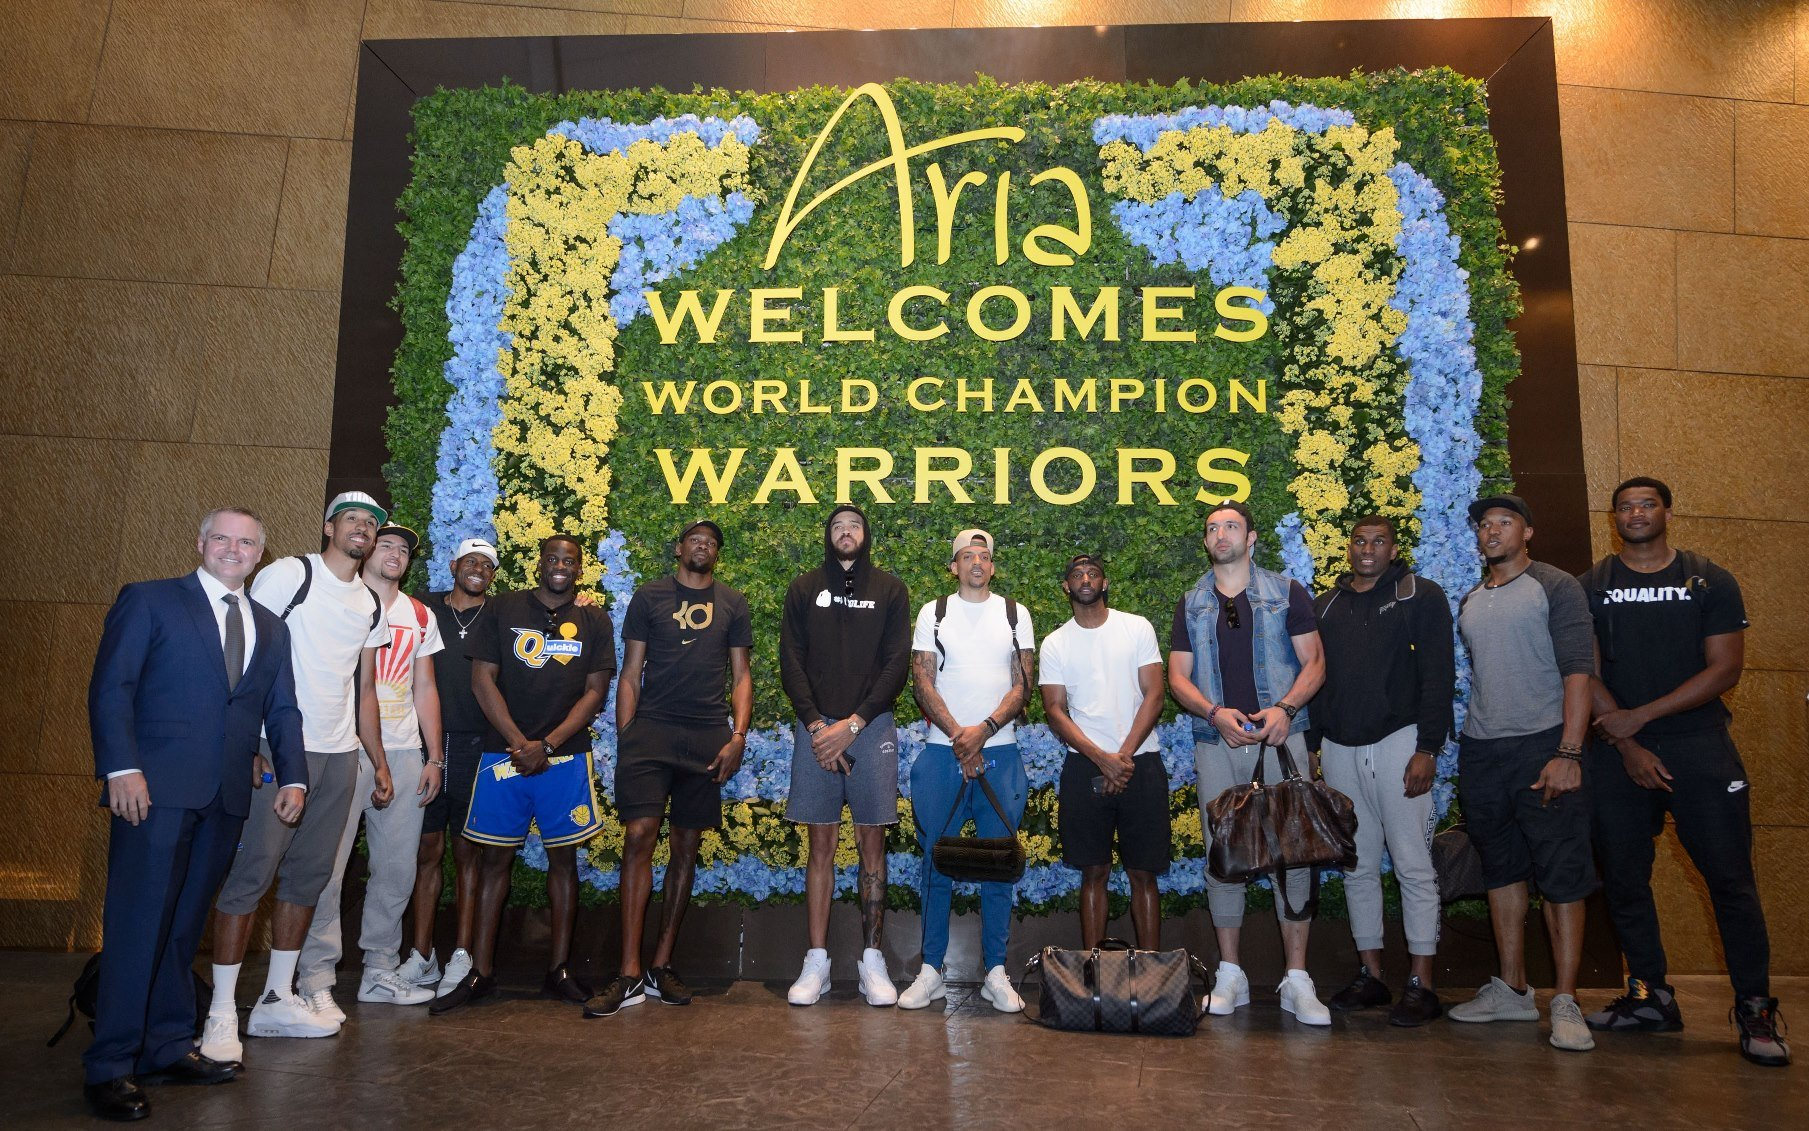 Members of the 2017 NBA champion Golden State Warriors came to Las Vegas to celebrate. (Photo Credit: Al Powers for Powers Imagery)